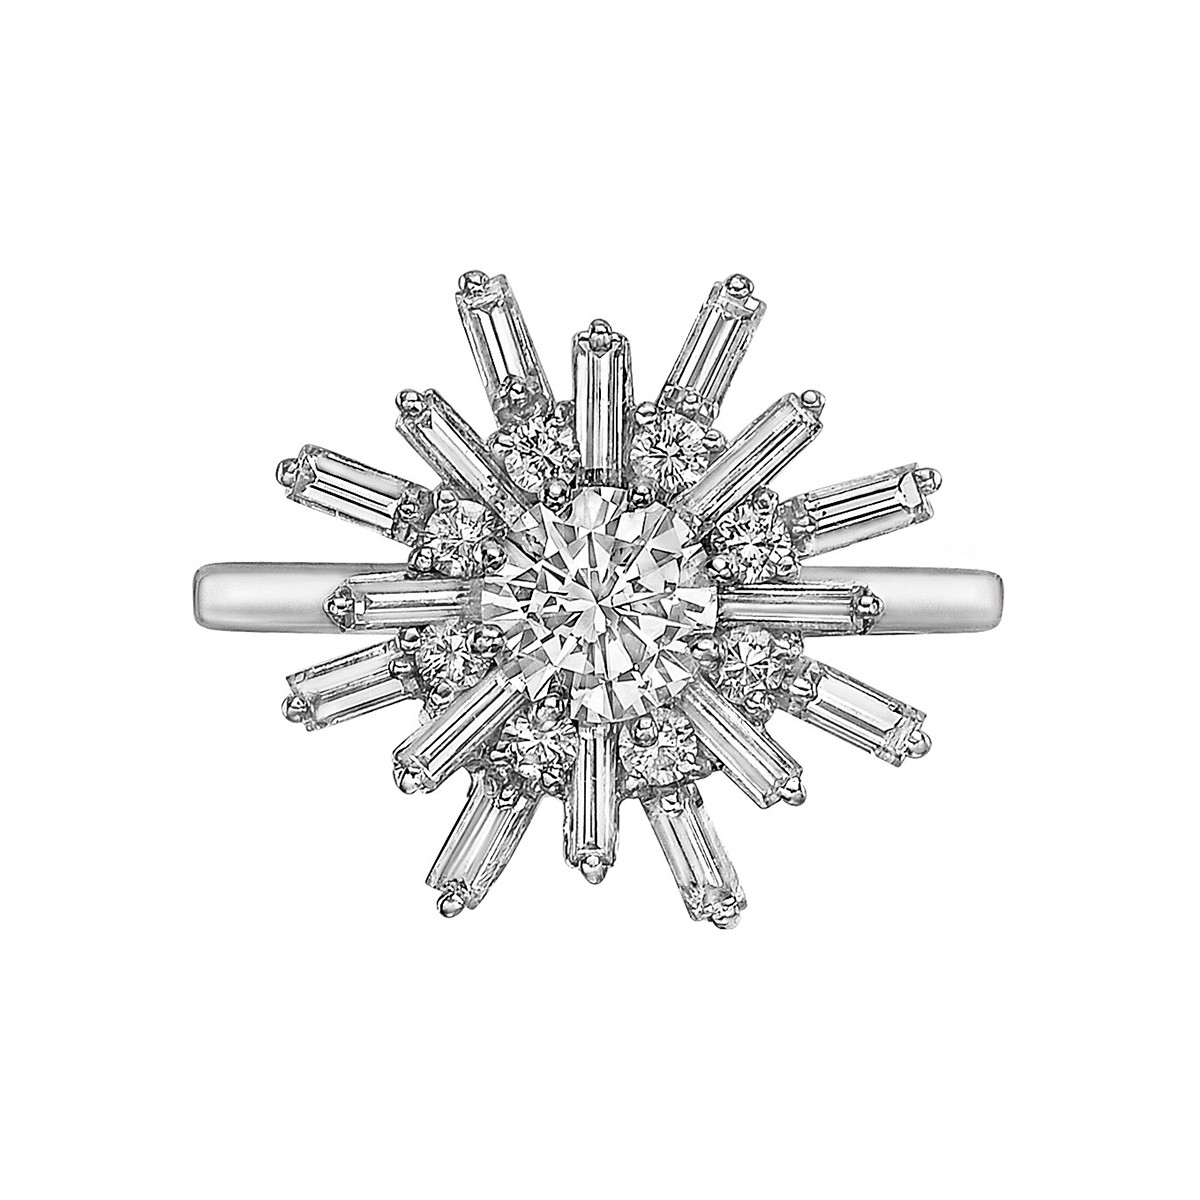 Diamond & Platinum Sunburst Ring